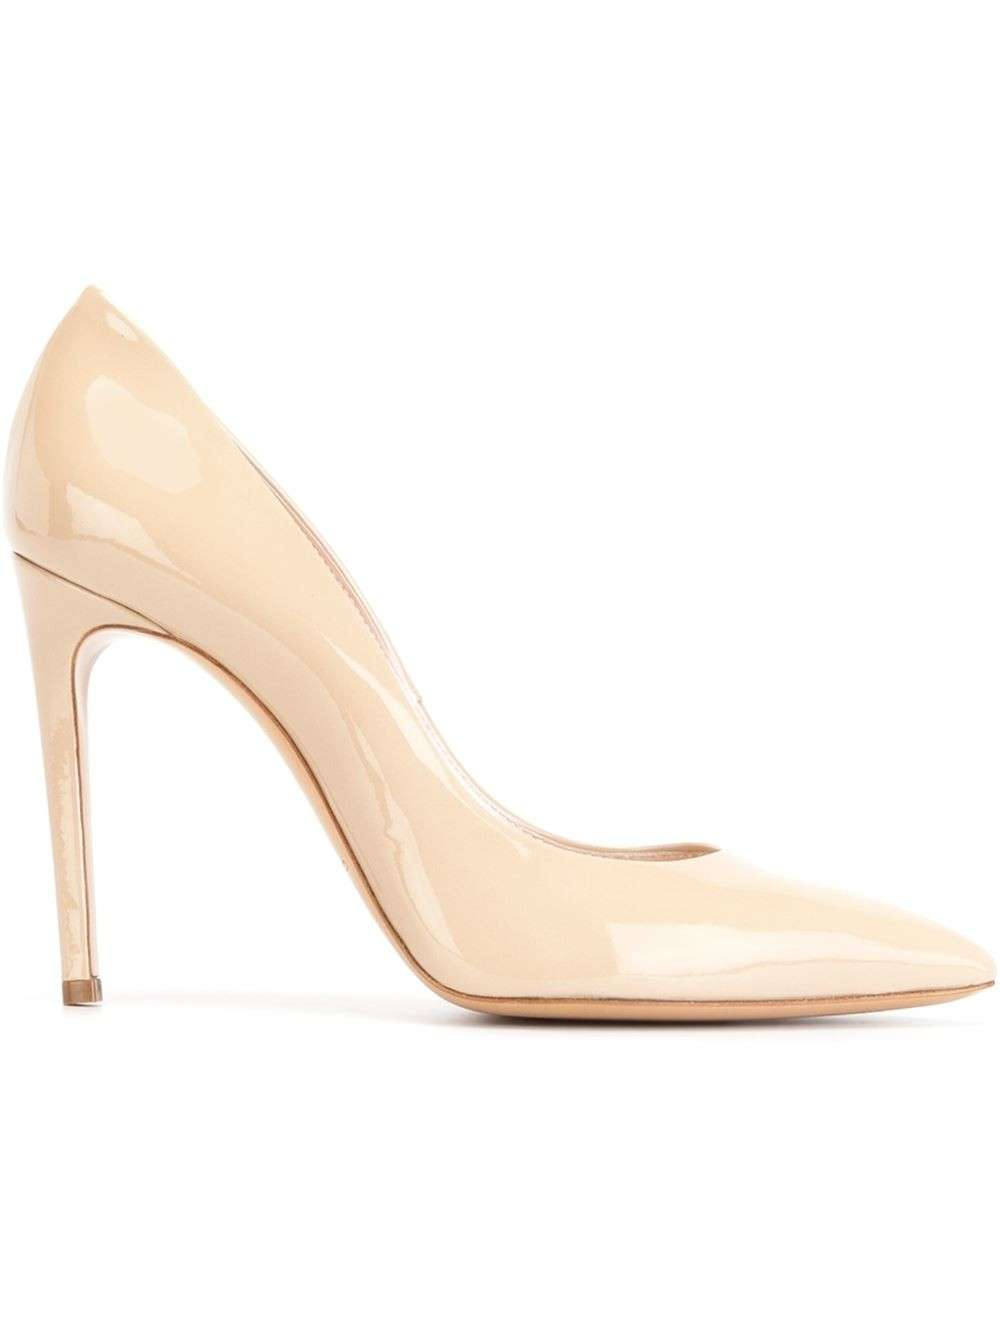 Pumps nude chiare in vernice Casadei